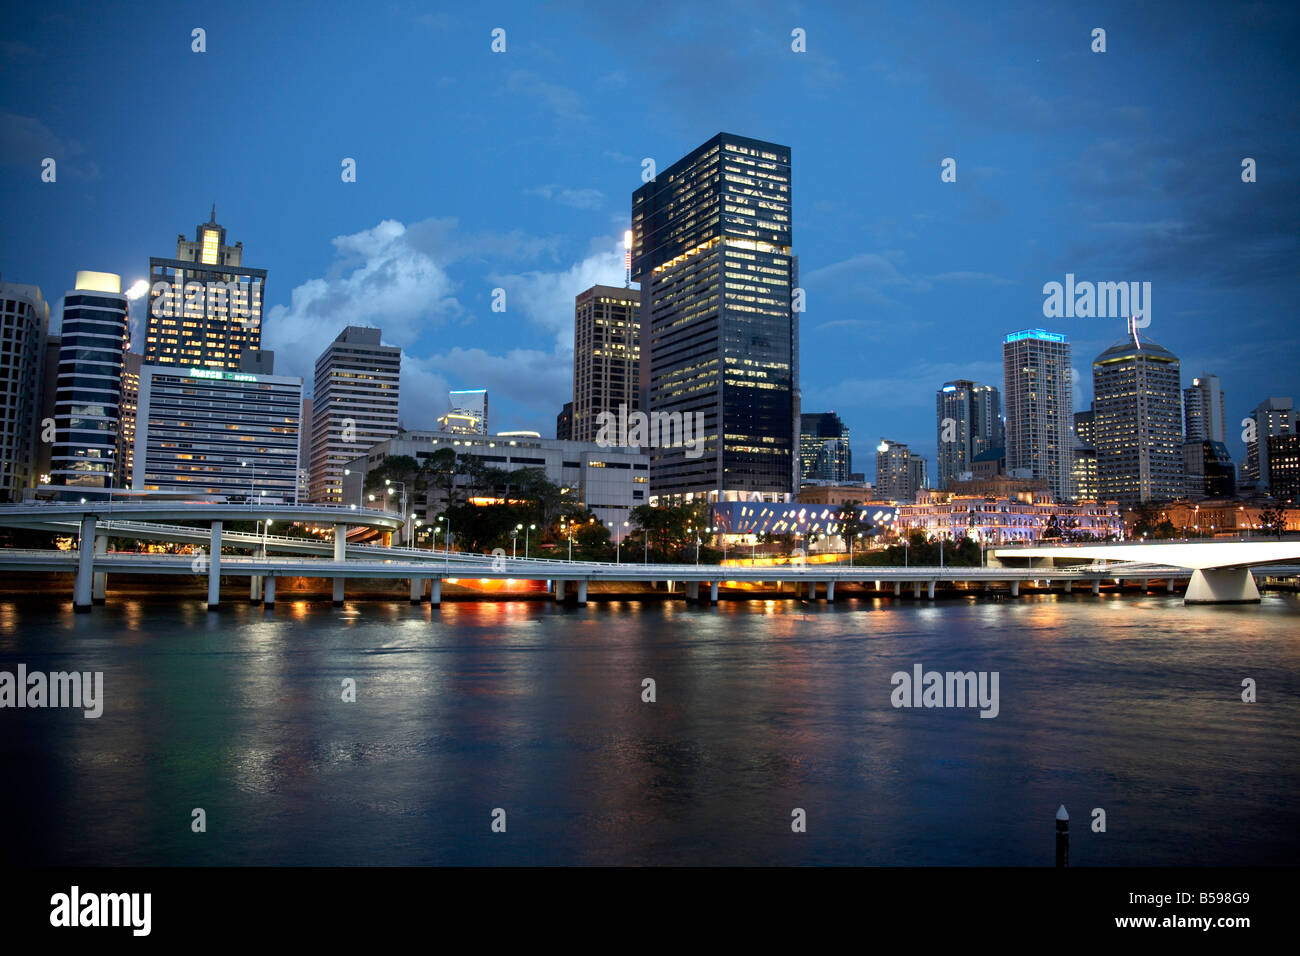 City centre business district waterfront buildings skyline beyond river in evening light in Brisbane Queensland - Stock Image